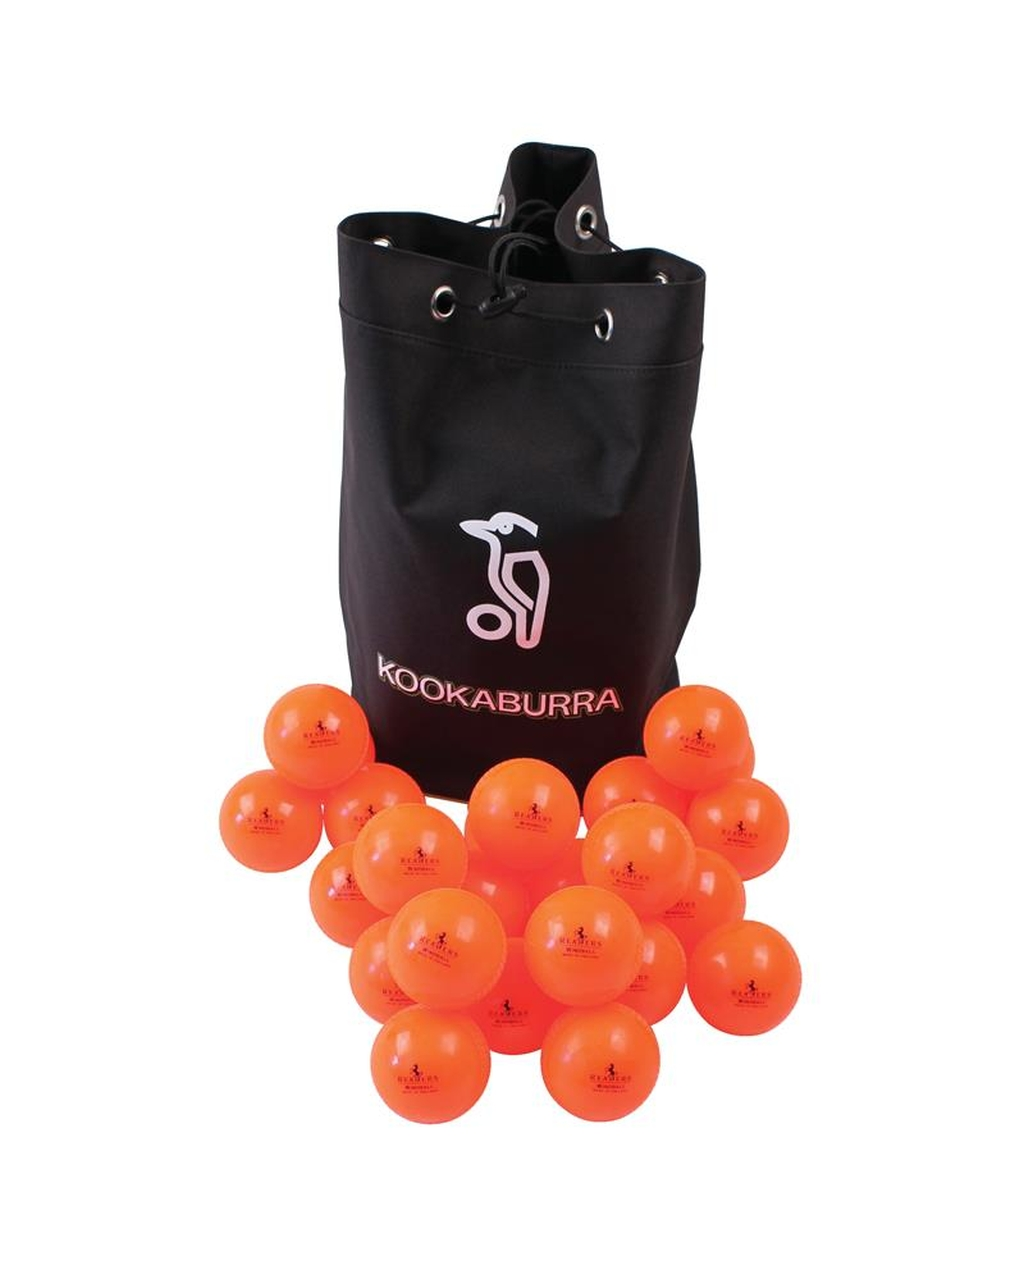 Readers Windball Cricket Bag - Includes 6 Balls